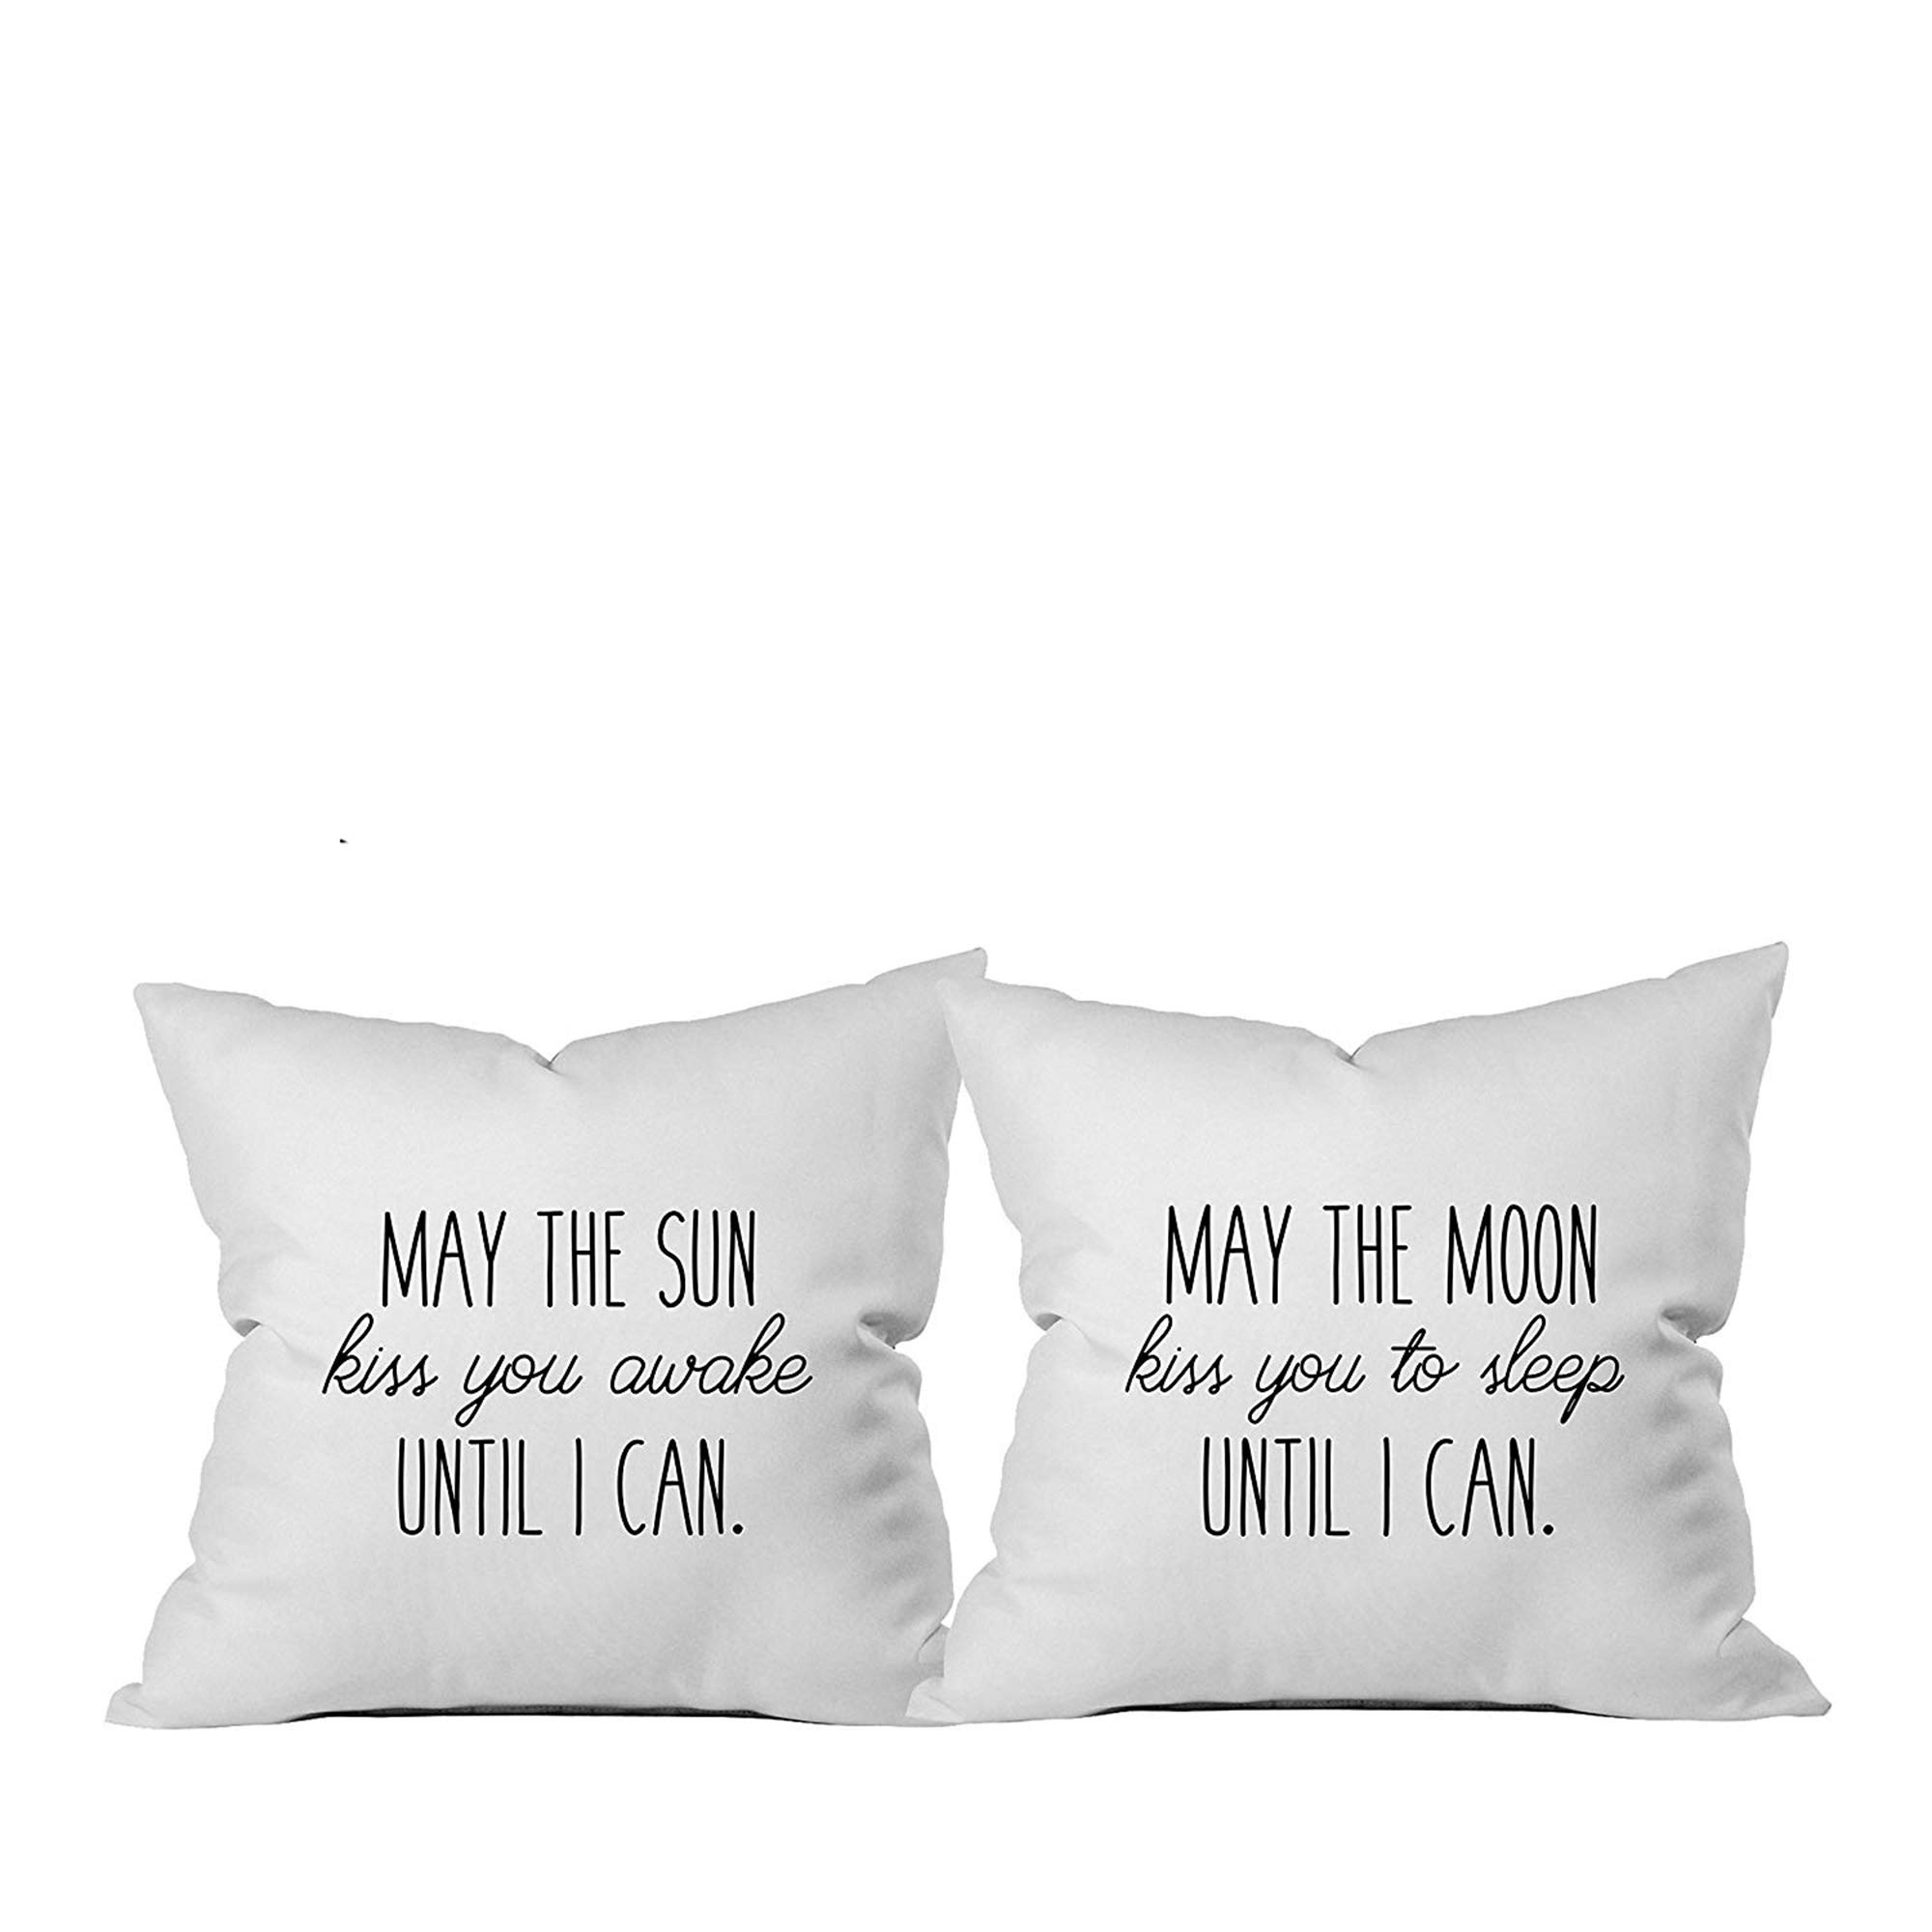 Oh, Susannah May The Sun Kiss You Awake Until I Can, May The Moon Kiss You to Sleep Until I Can Reversible Throw Pillow - Cover Fits 18x18 Insert Long Distance Relationships Gifts for Her I Love You G